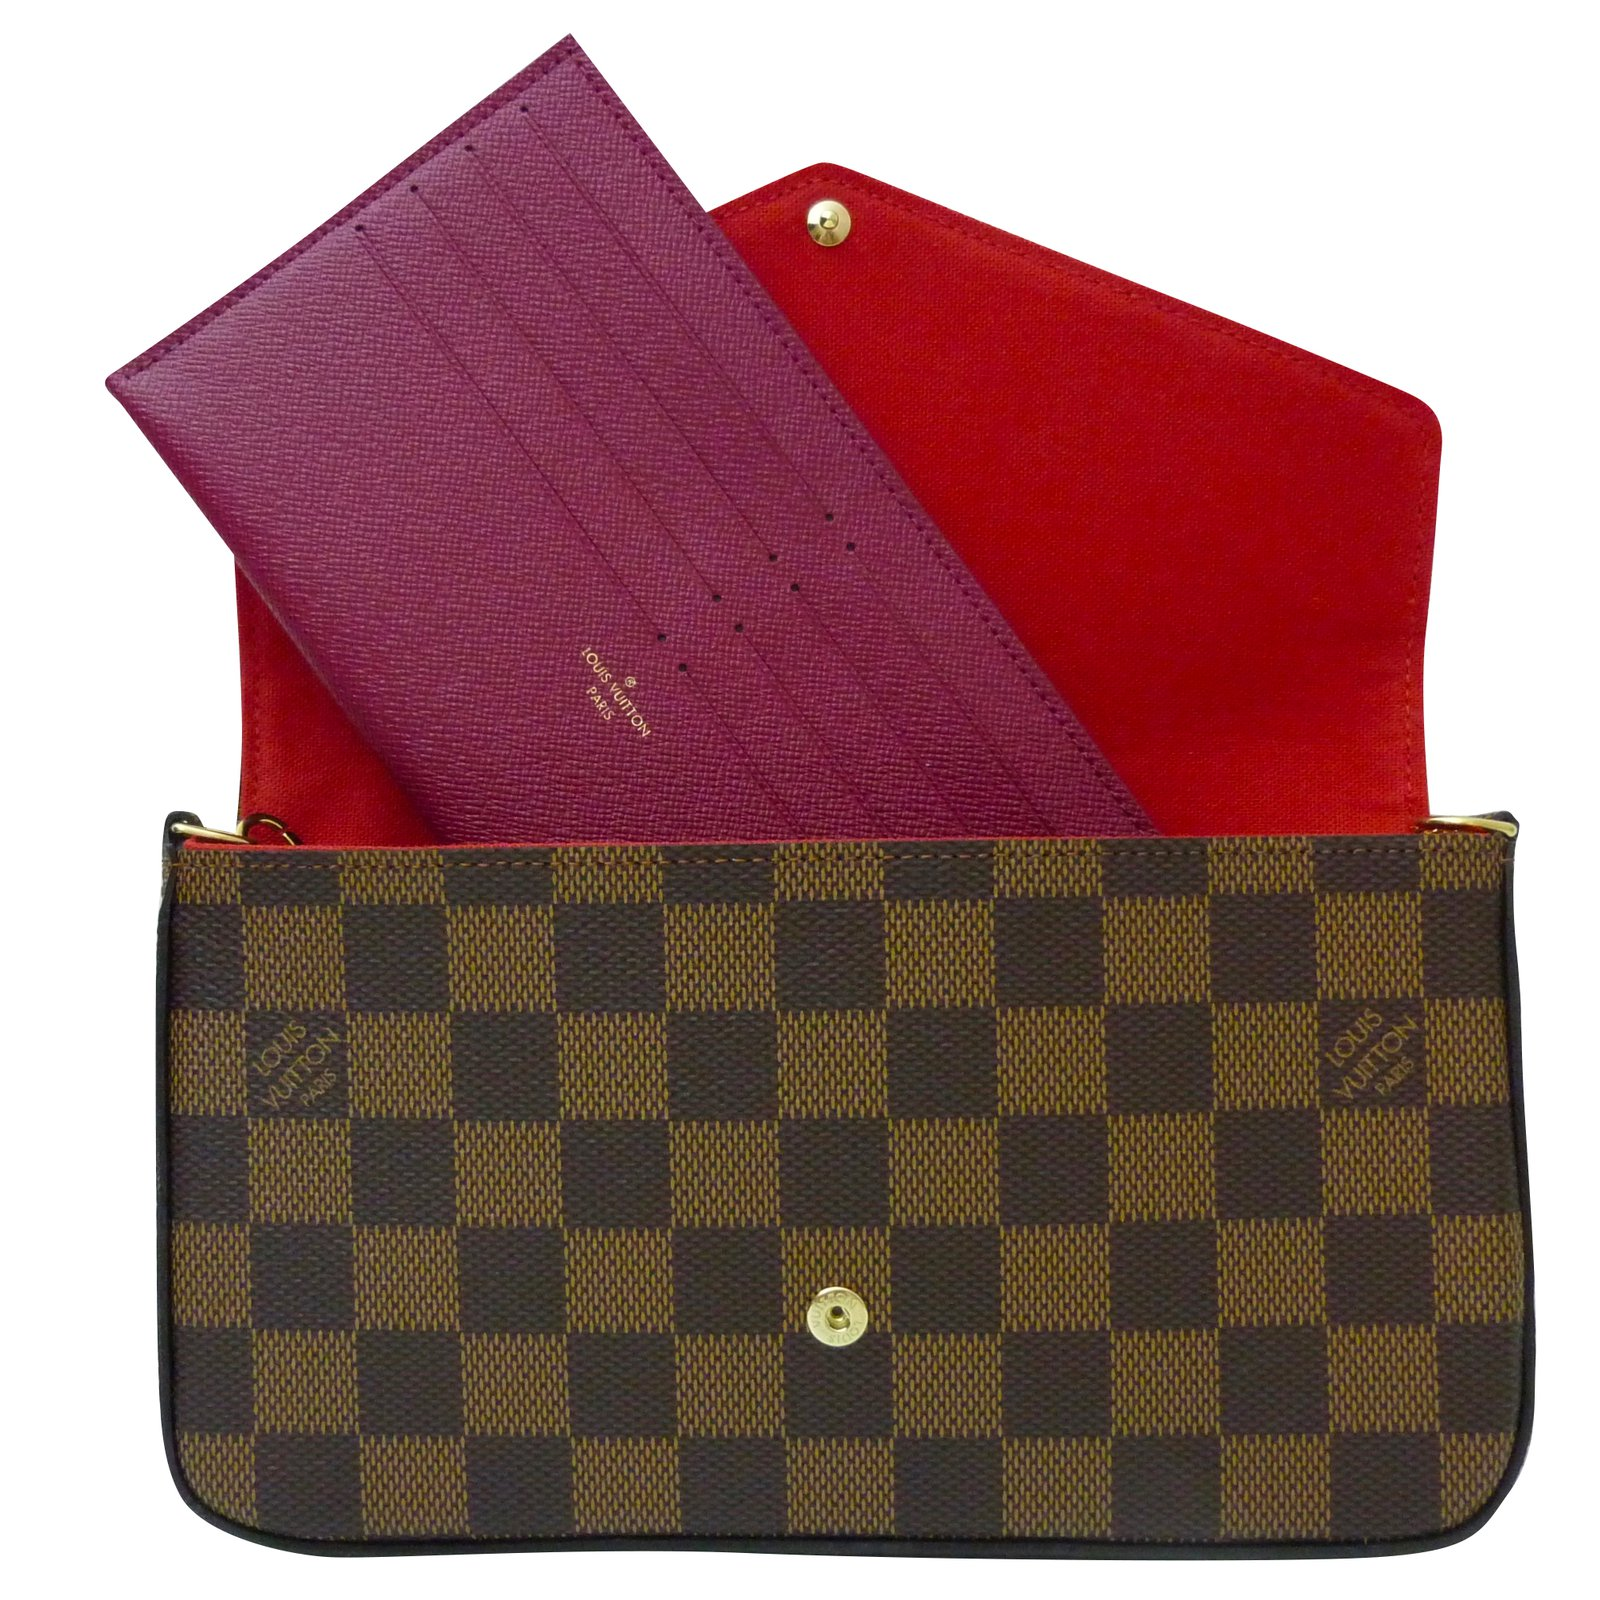 Louis Vuitton Clutch Bags Clutch Bags Leather Cloth Dark Brown Ref 8a721bfa706a0